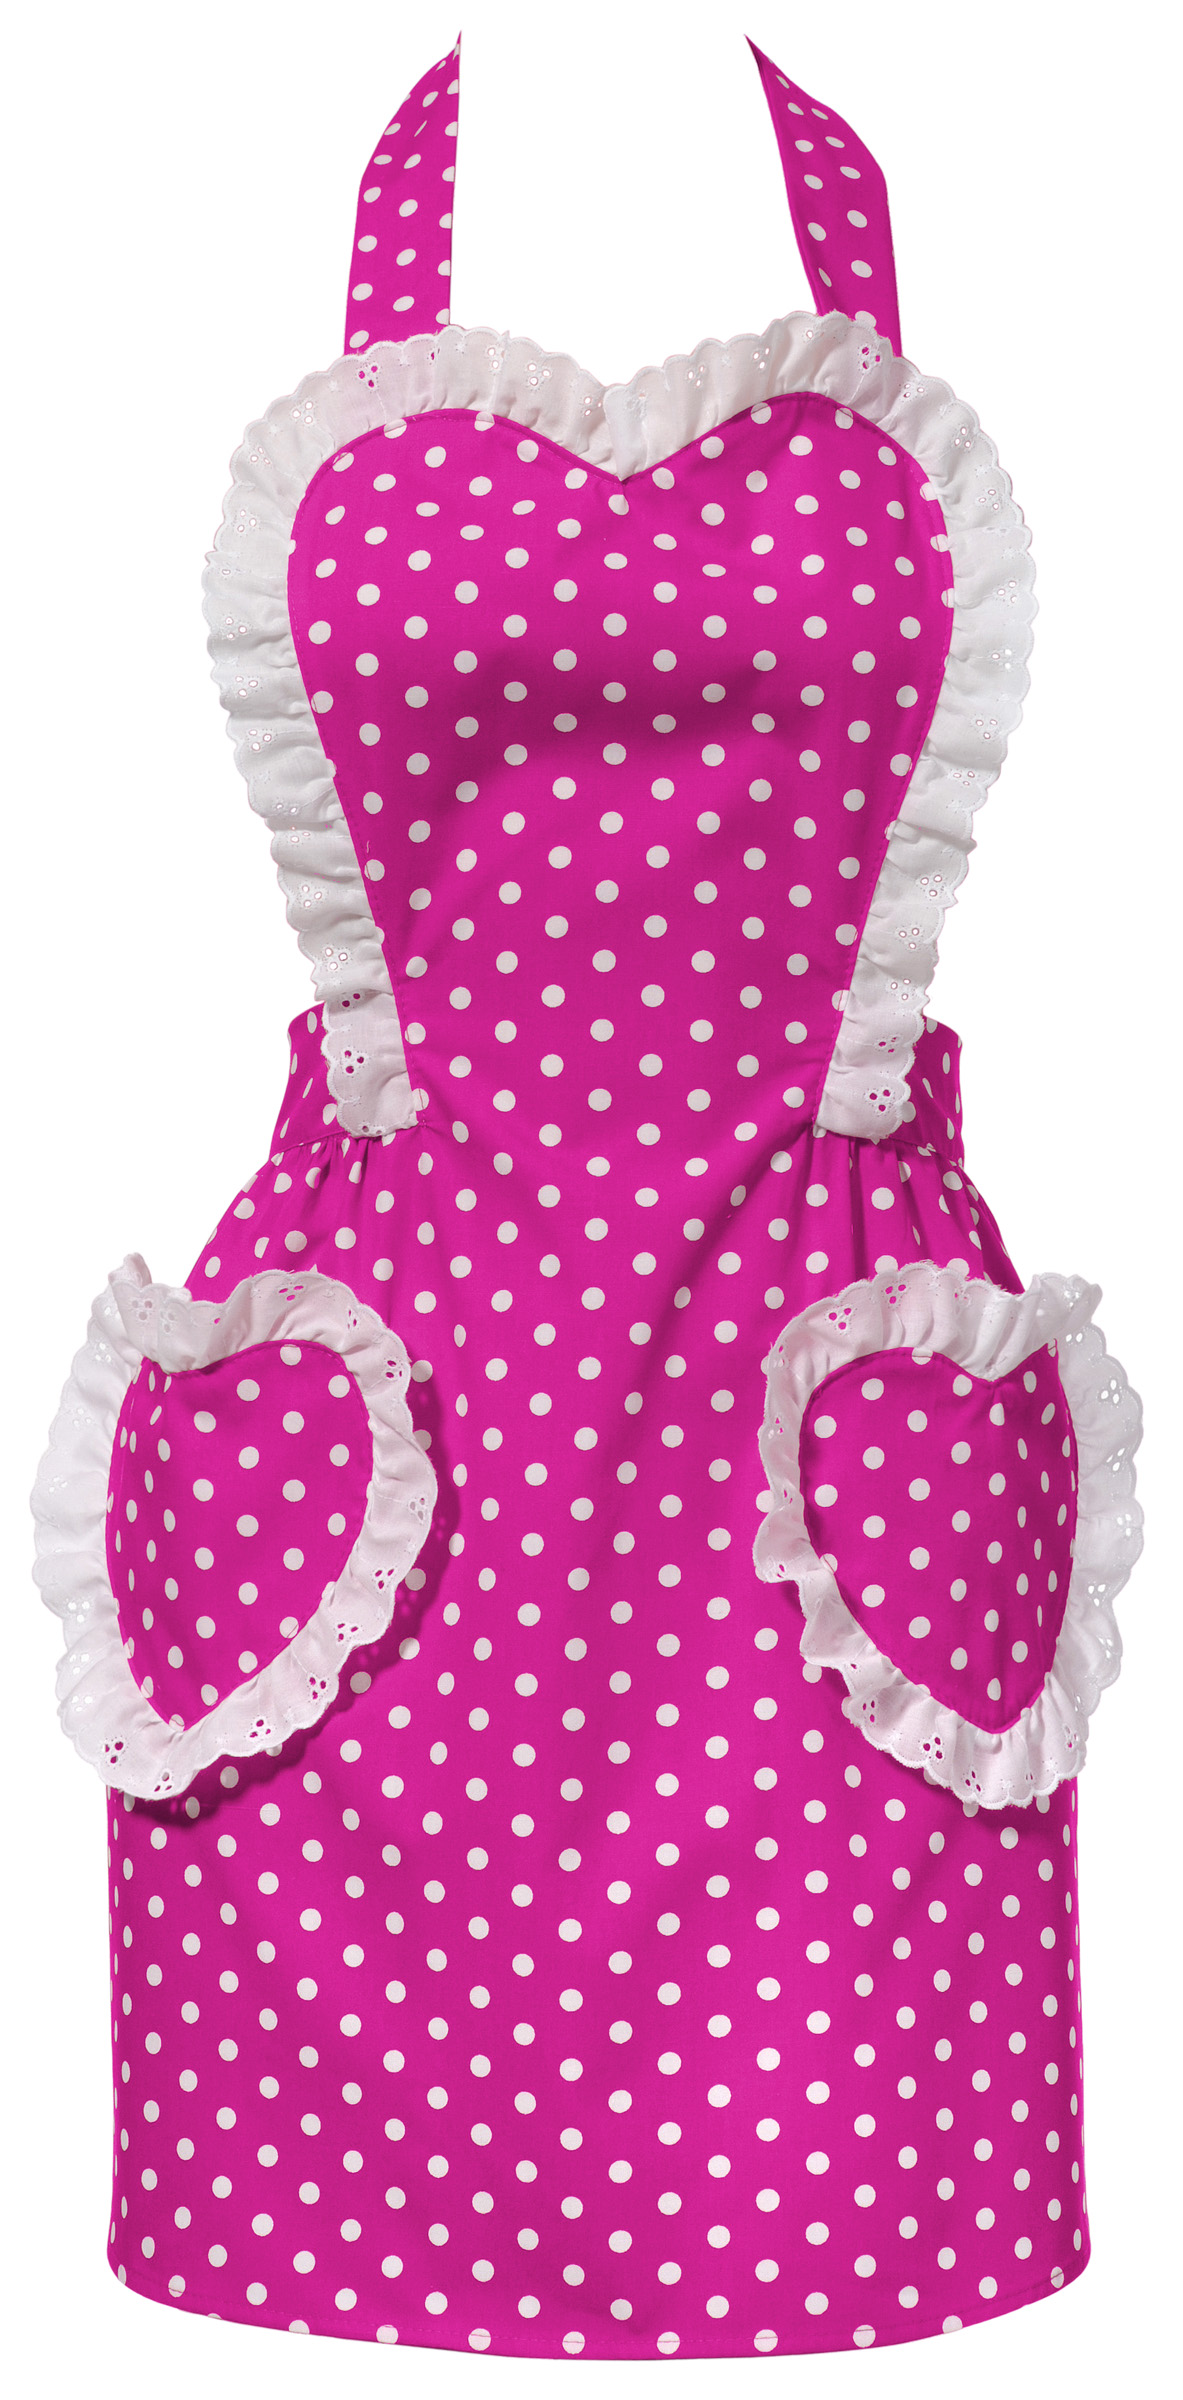 you are the winner of the pink sweetheart apron from carolyn's